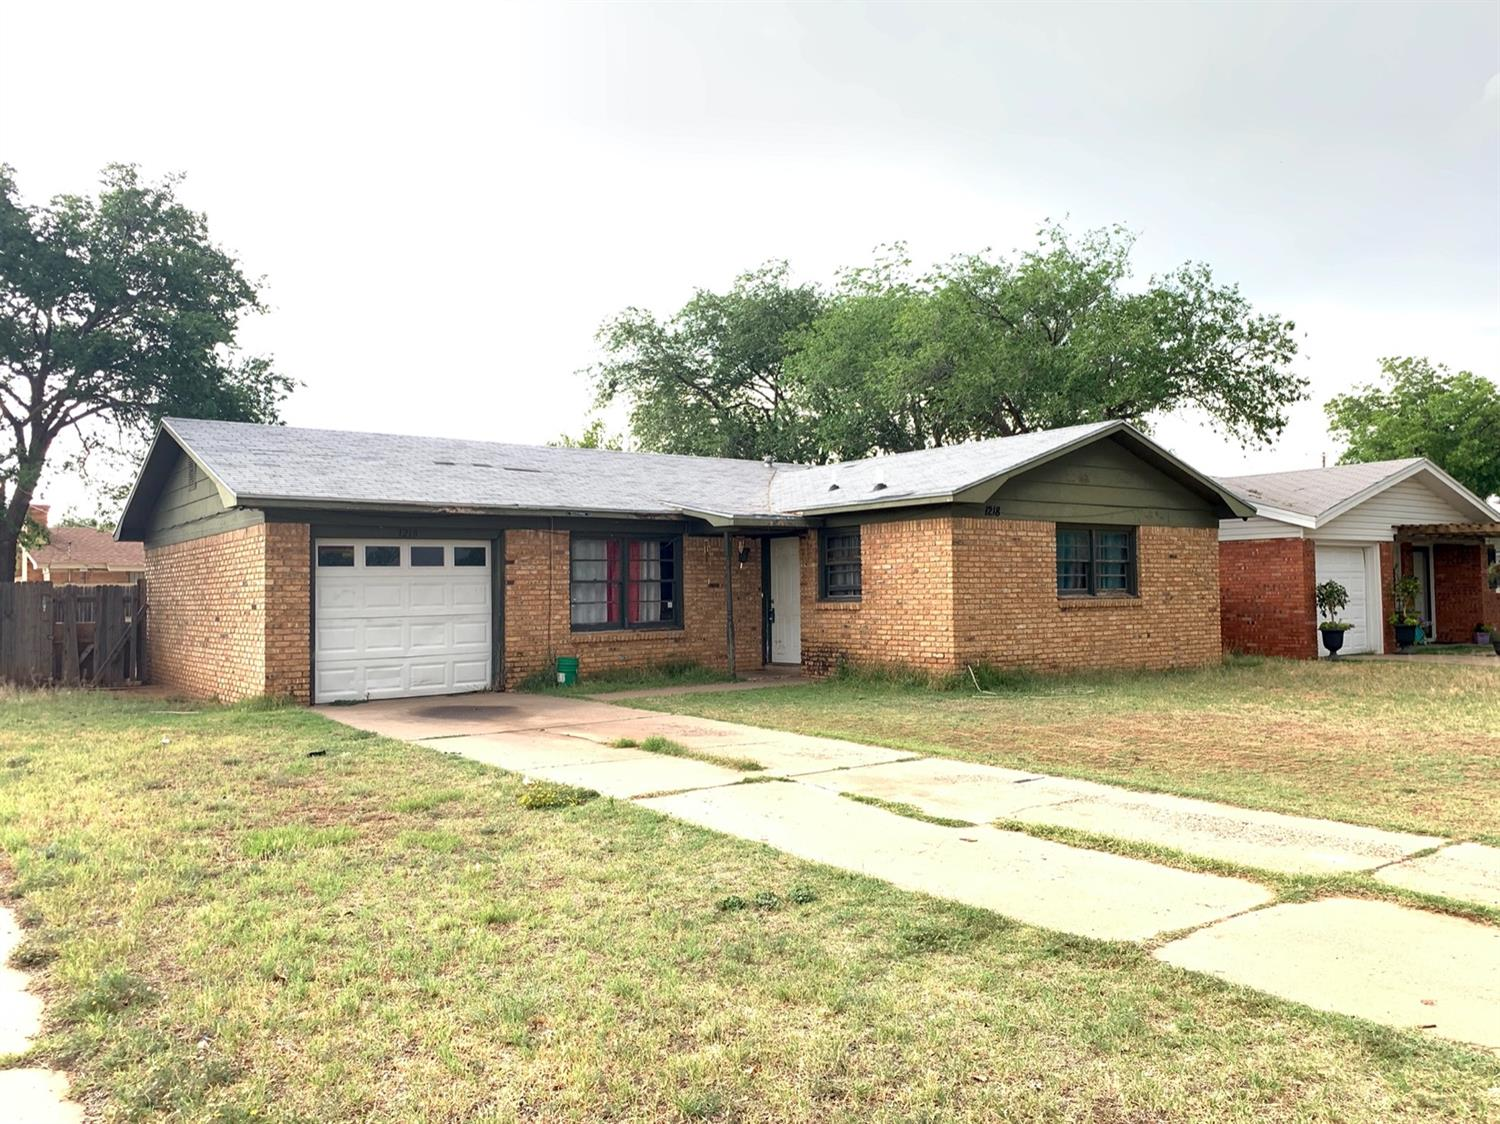 1218 49th Street, Lubbock in Lubbock County, TX 79412 Home for Sale